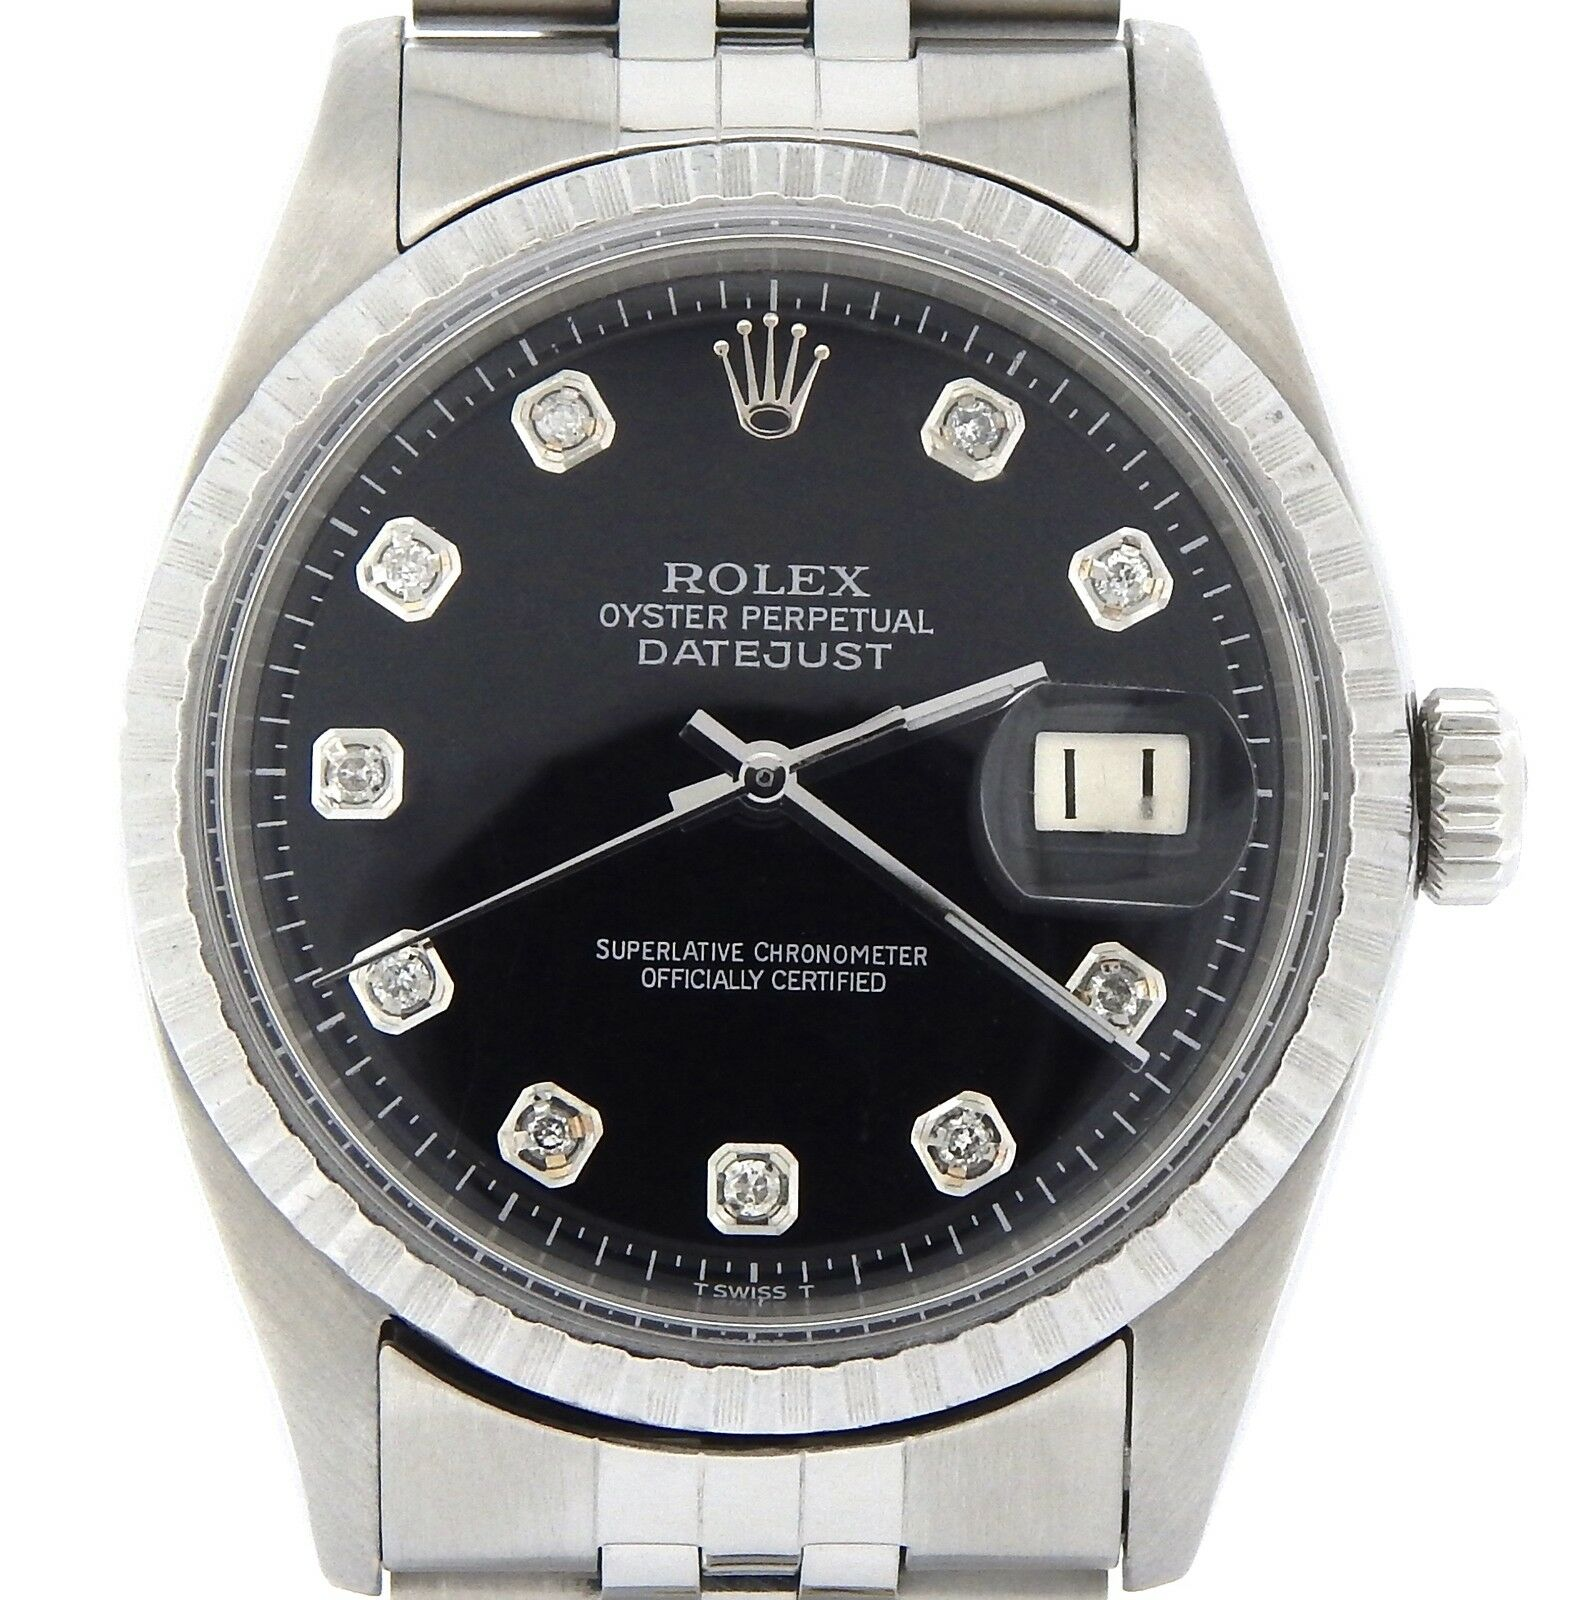 $3099.98 - Rolex Datejust Mens SS Stainless Steel Jubilee Black Diamond Dial Watch 1603